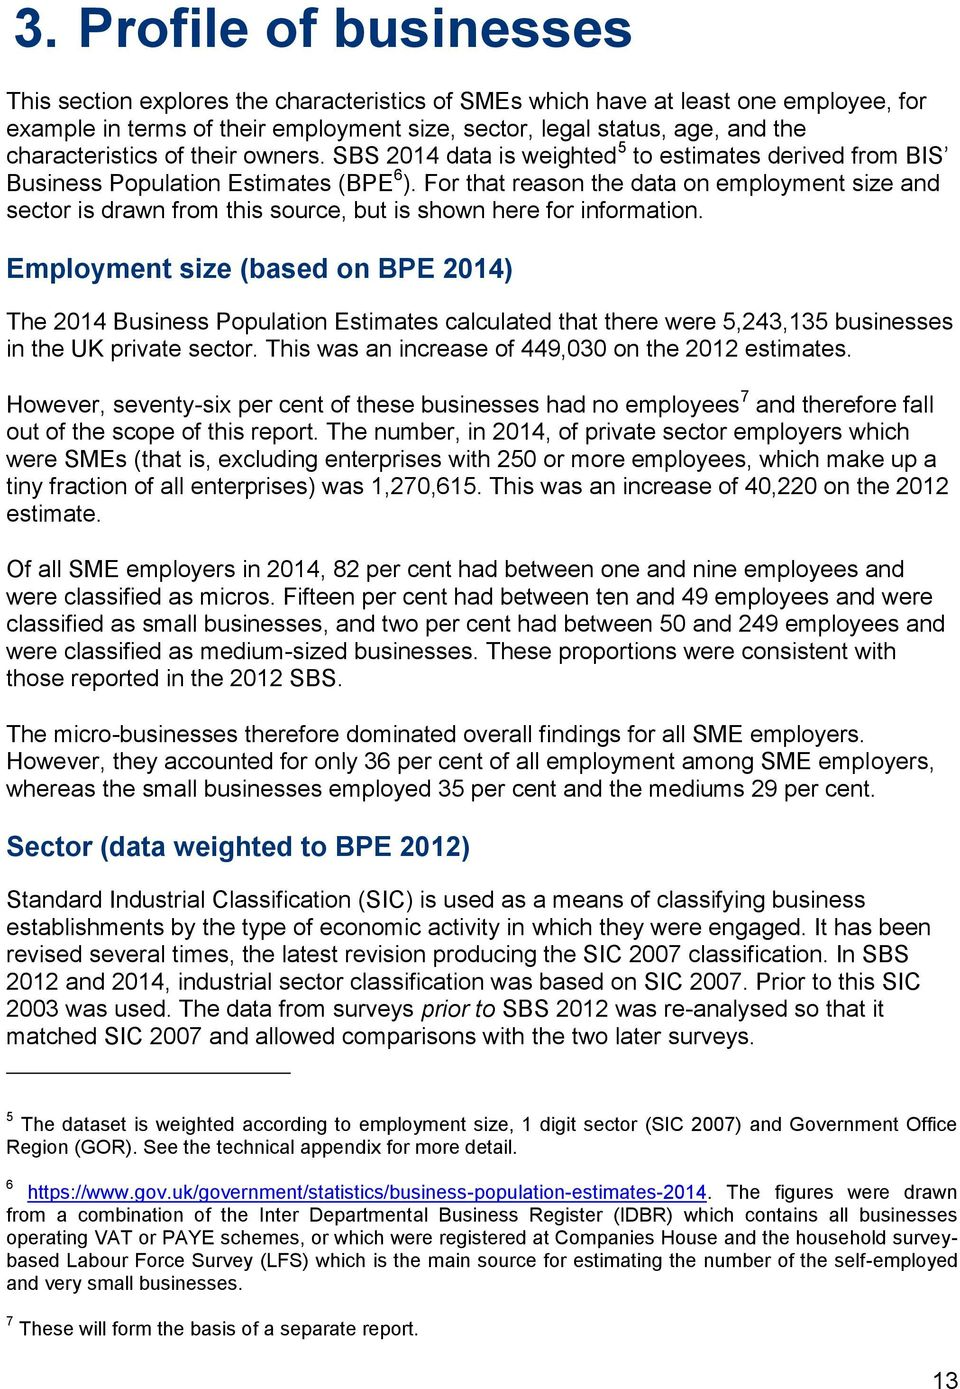 For that reason the data on employment size and sector is drawn from this source, but is shown here for information.